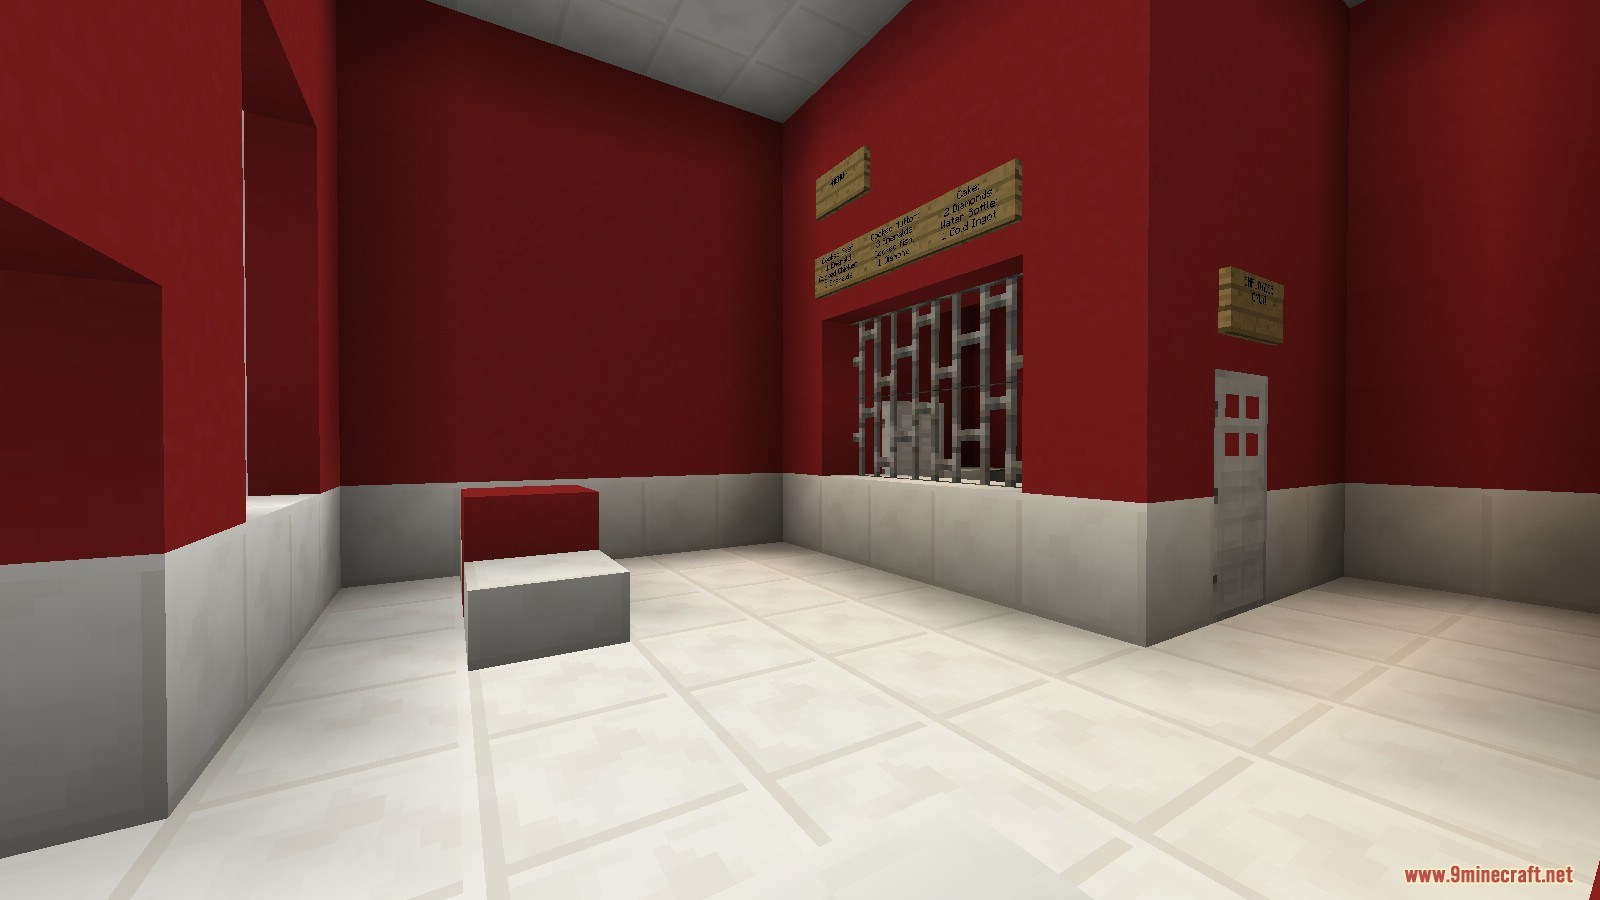 PopularMMOs Find The Button Map Screenshots (12)